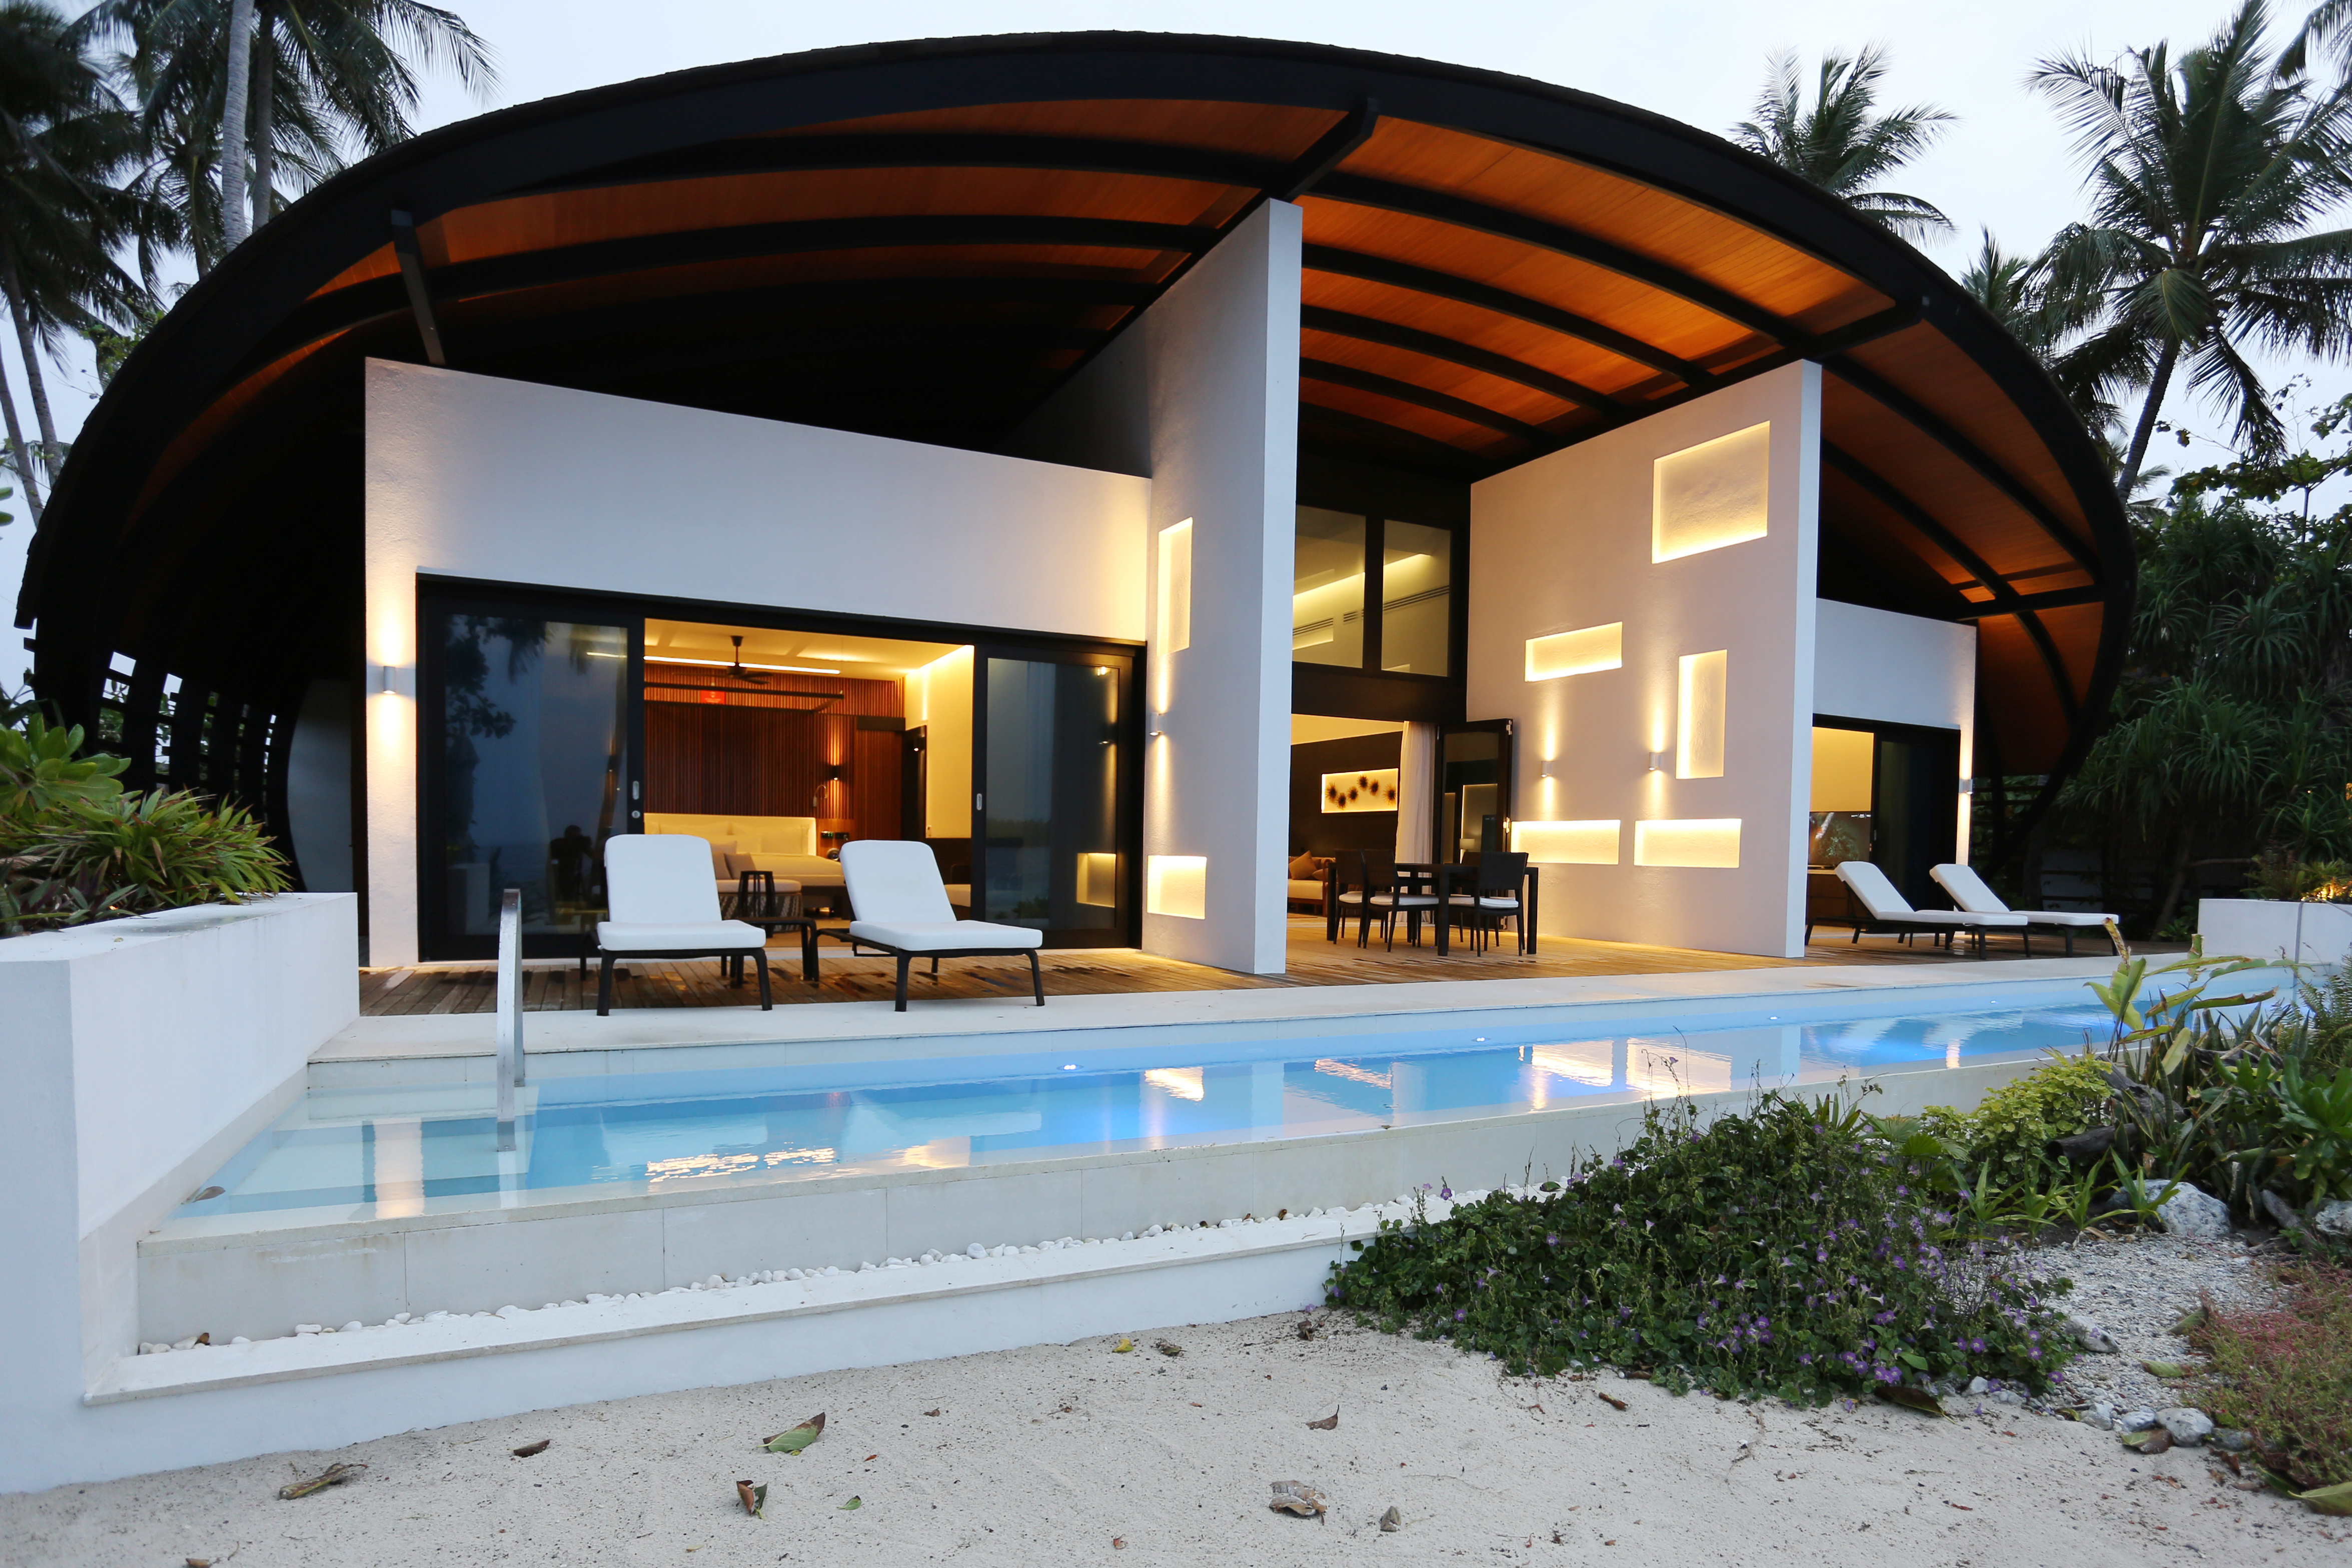 8_Westin Maldives - 2BR Island Residence Exterior night